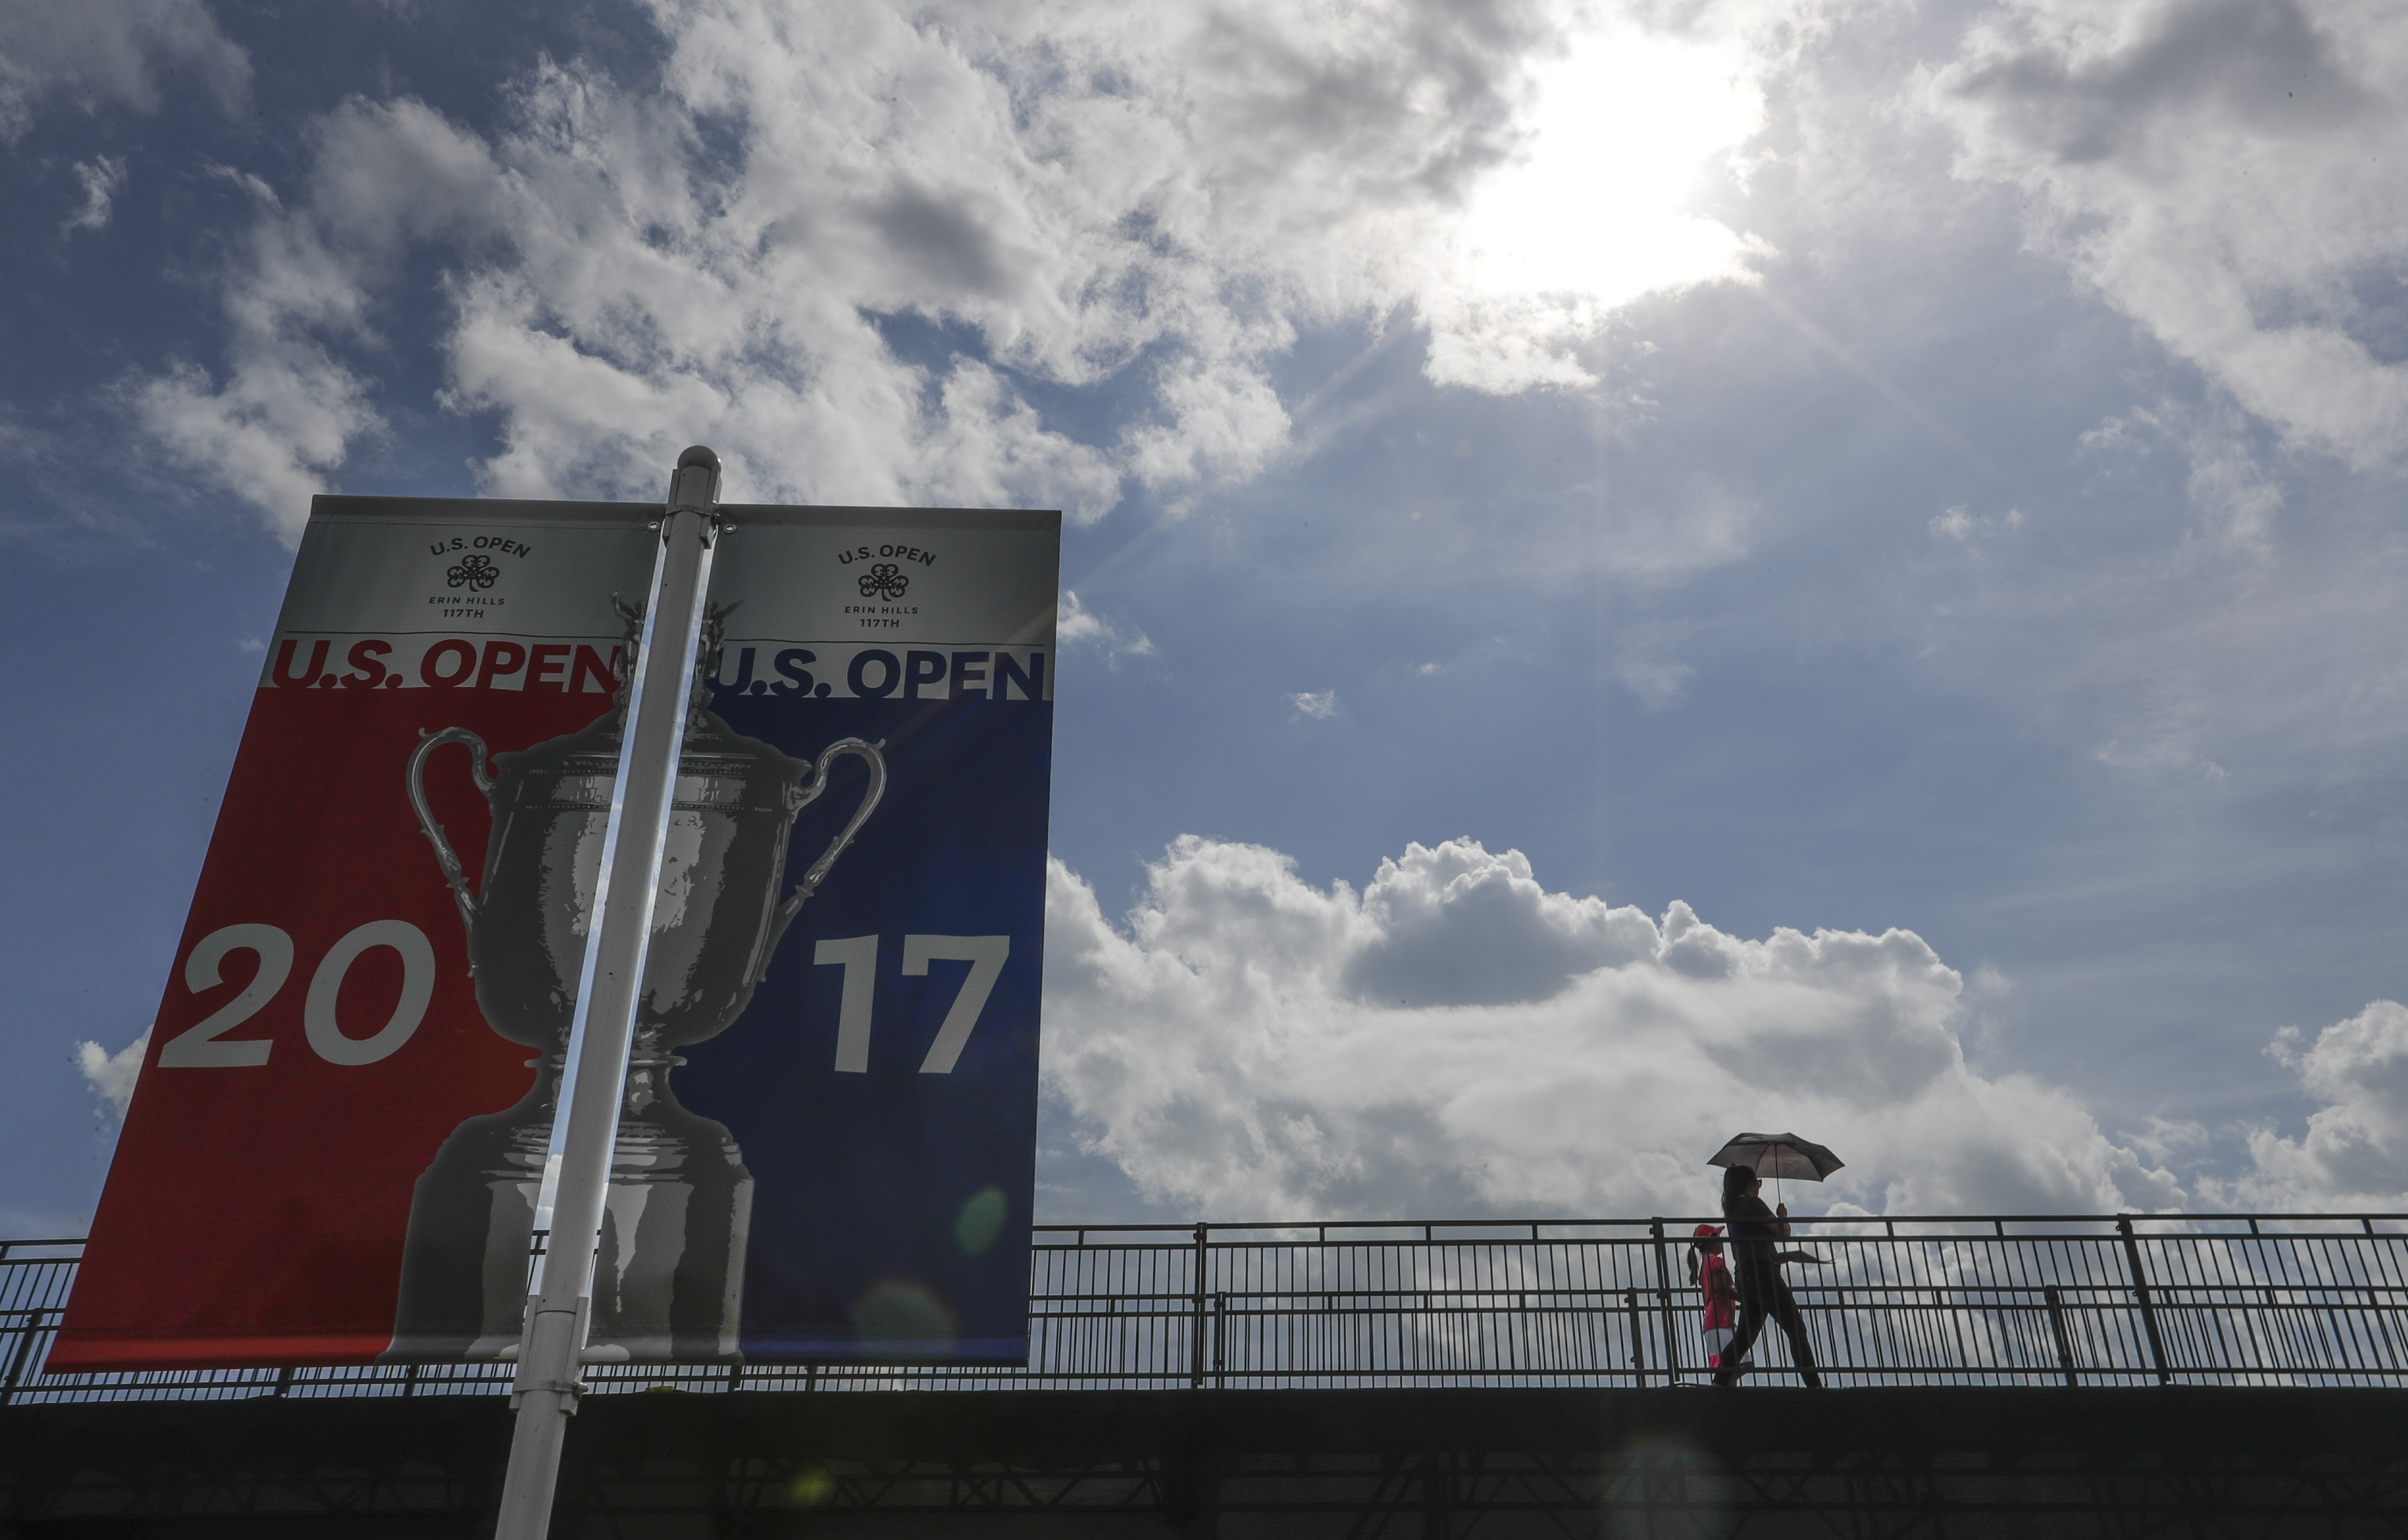 Fans walk on a bridges with an umbrella during a practice round for the U.S. Open golf tournament Wednesday, June 14, 2017, at Erin Hills in Erin, Wis. (AP Photo/Morry Gash)